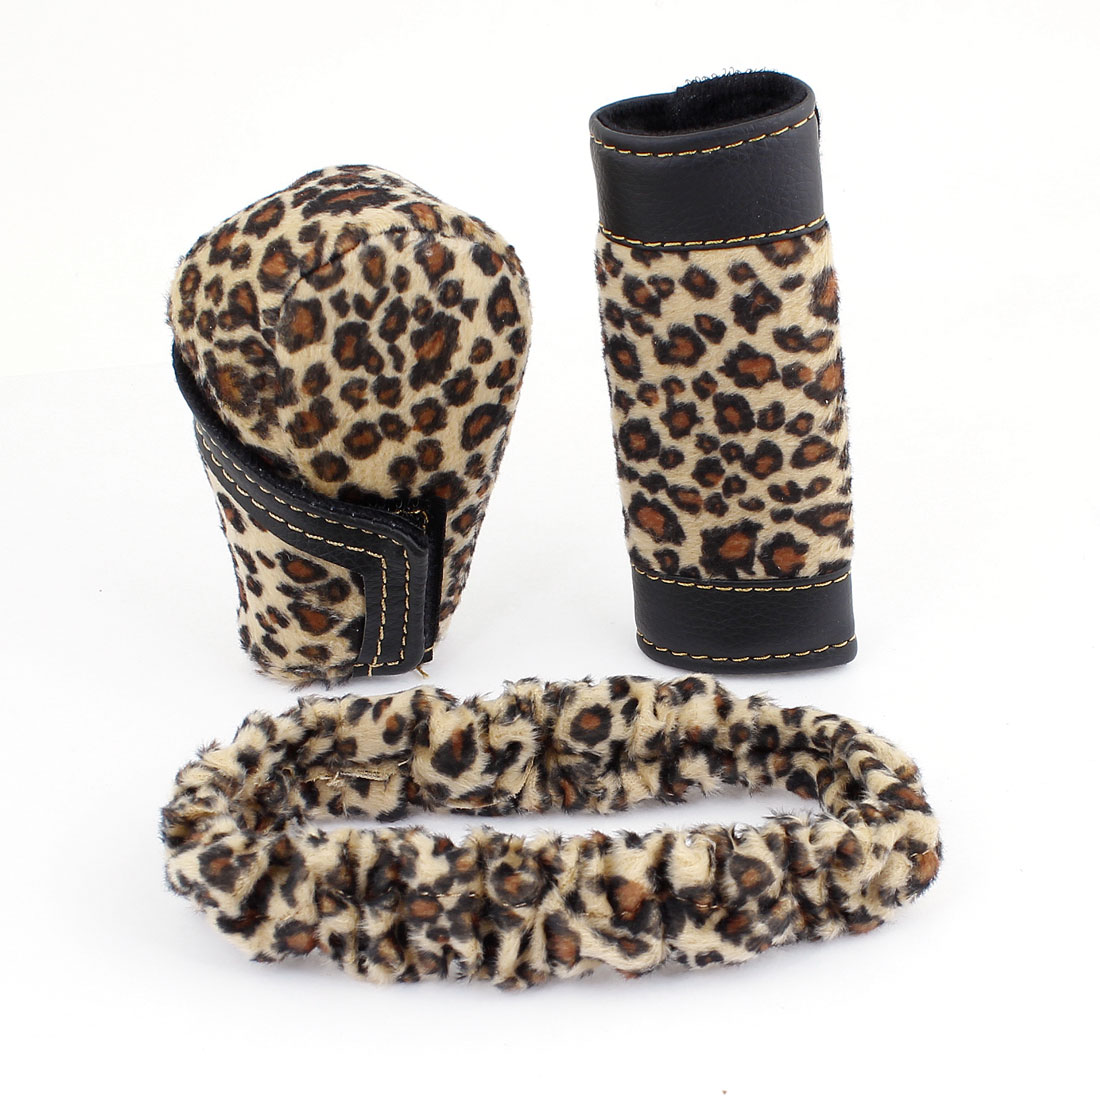 3 Pcs Leopard Print Plush Car Gear Shift Knob Handbrake Mirror Cover Case Brown